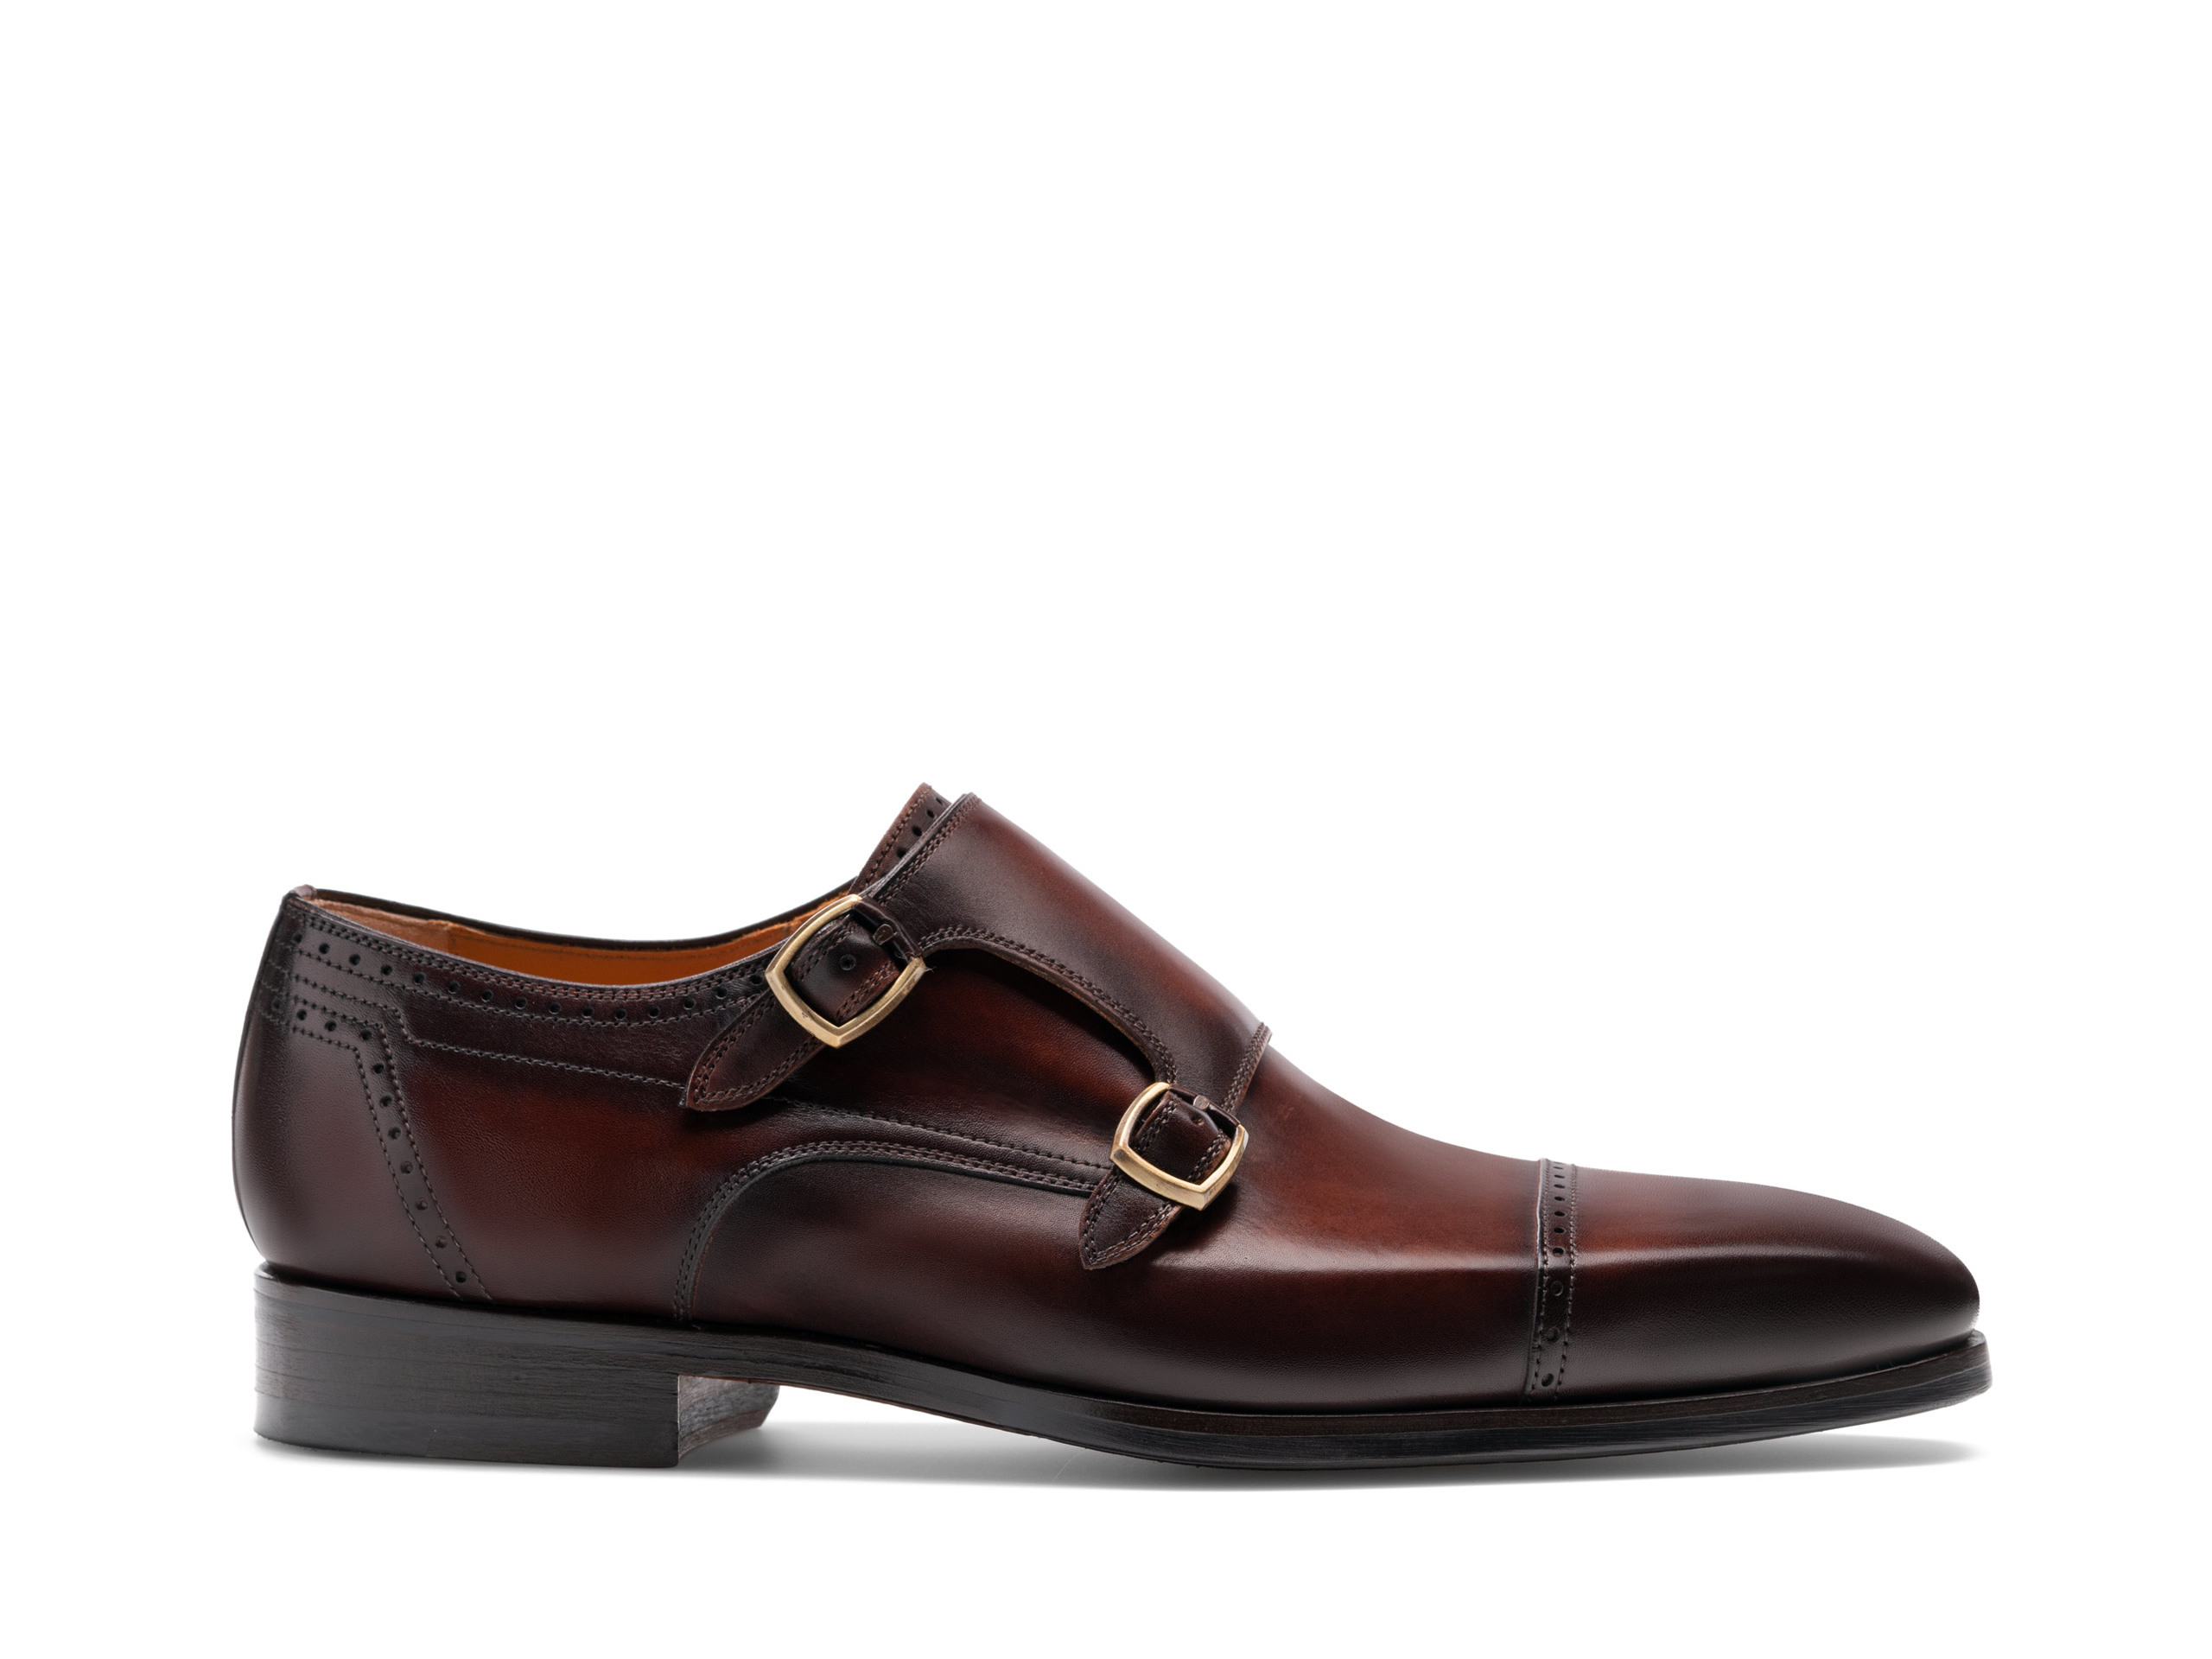 Side view of the Nalón Midbrown Shoes